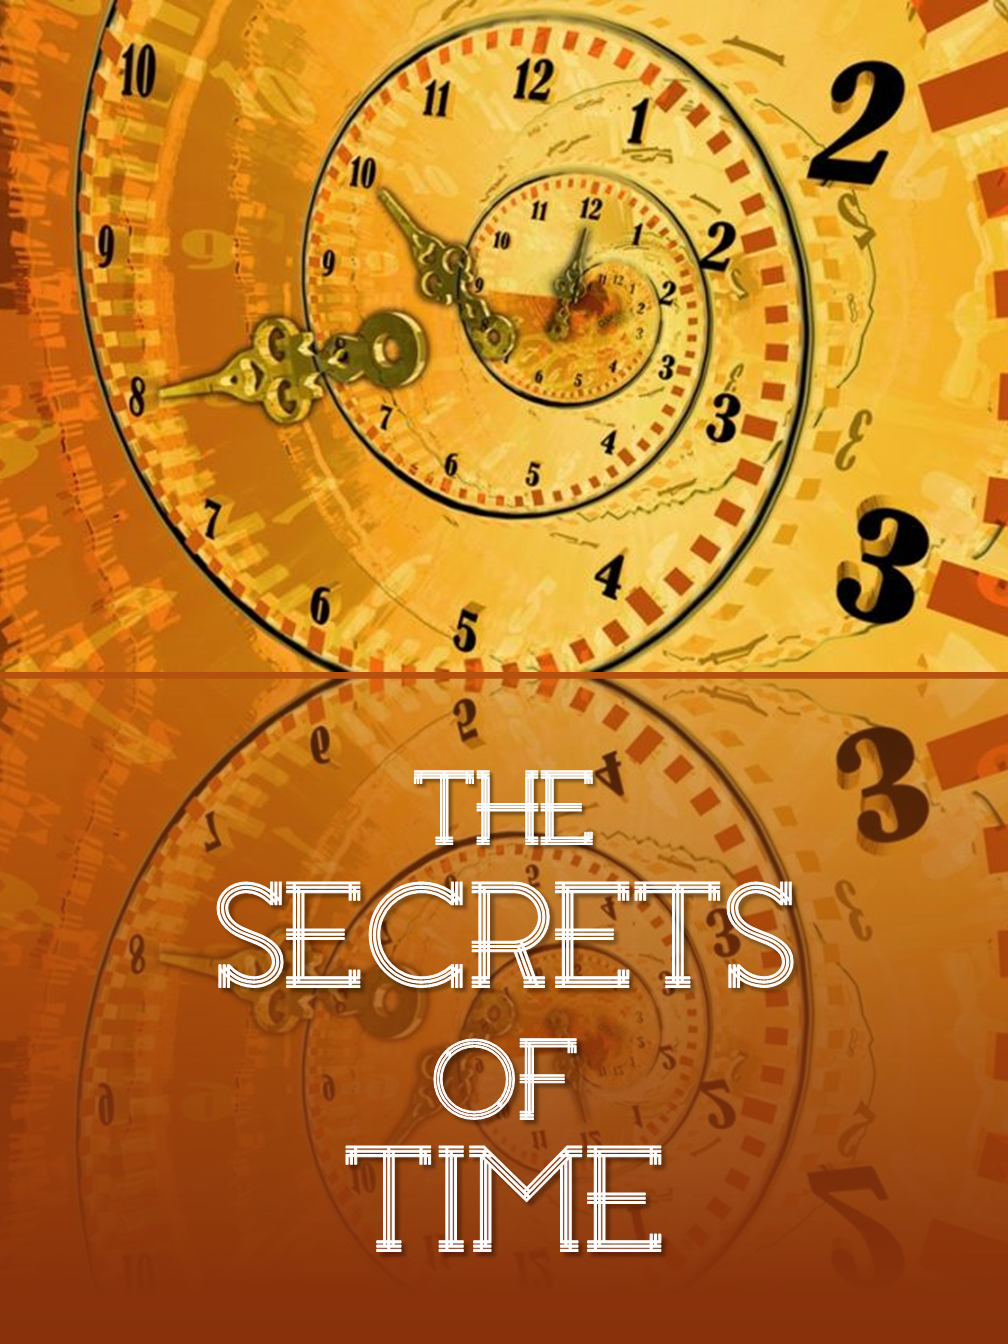 The Secrets of Time!